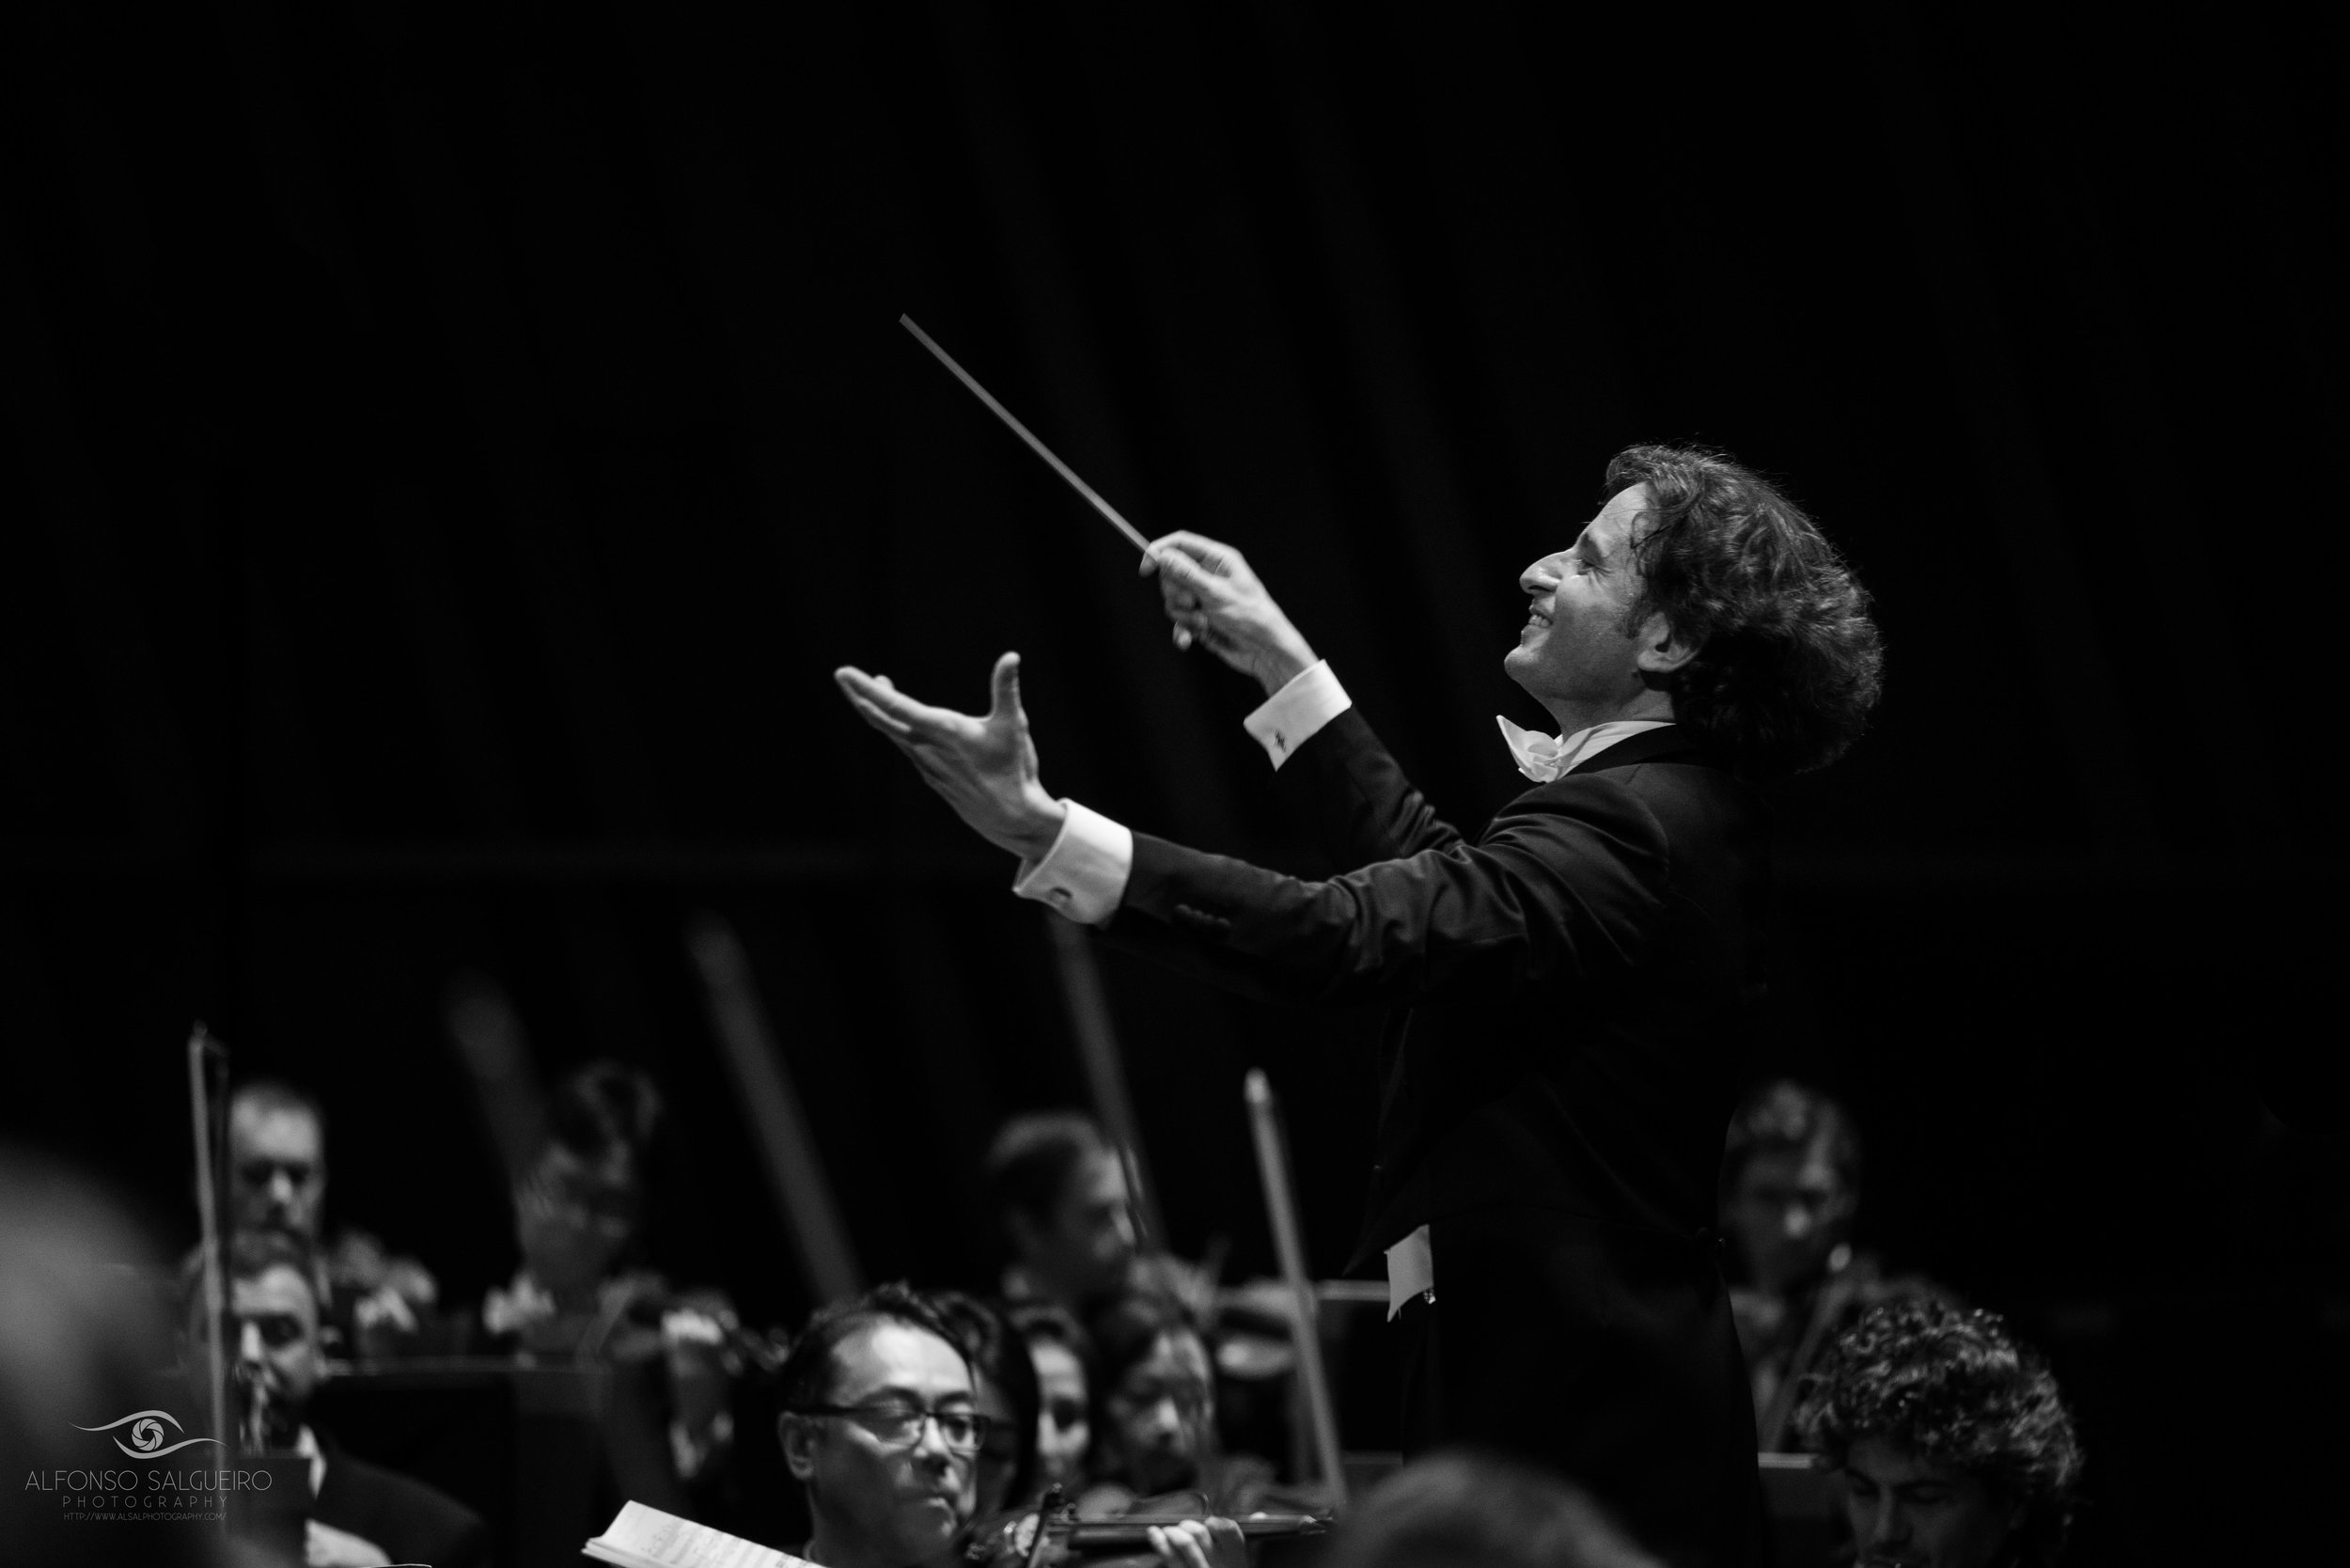 Philharmonie 18-19 season in images_-64.jpg